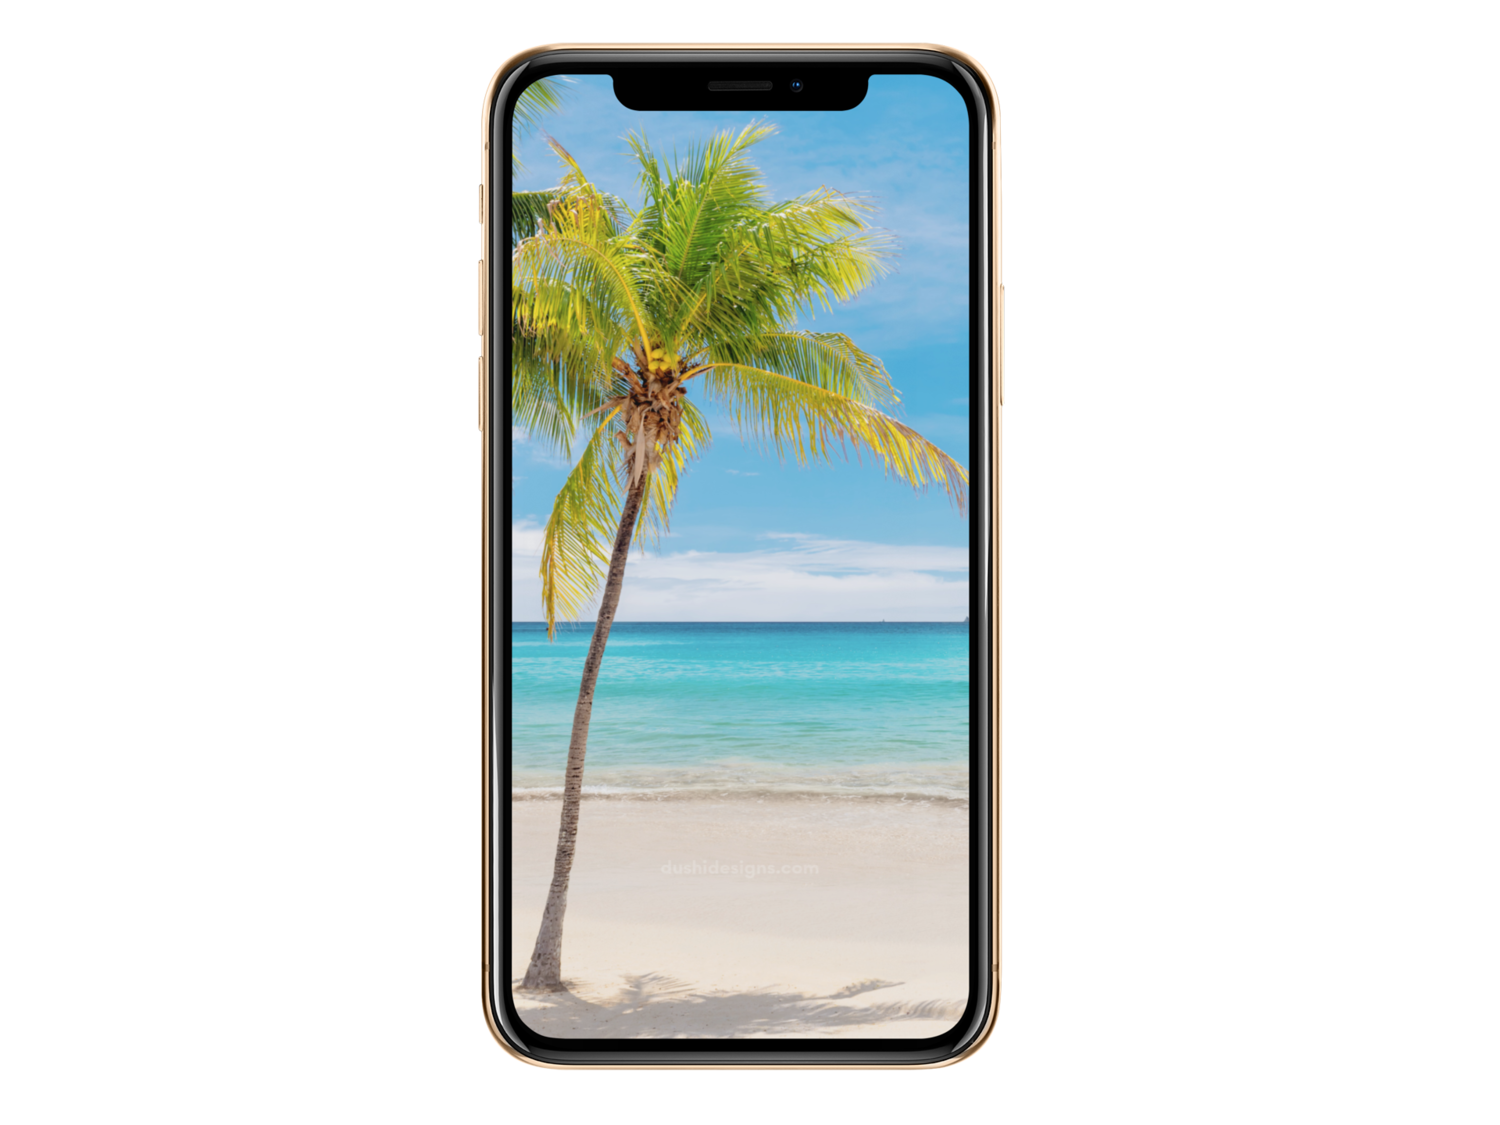 Tropical Paradise Free Wallpaper In 2020 Beach Themed Wallpaper Tropical Paradise Free Wallpaper